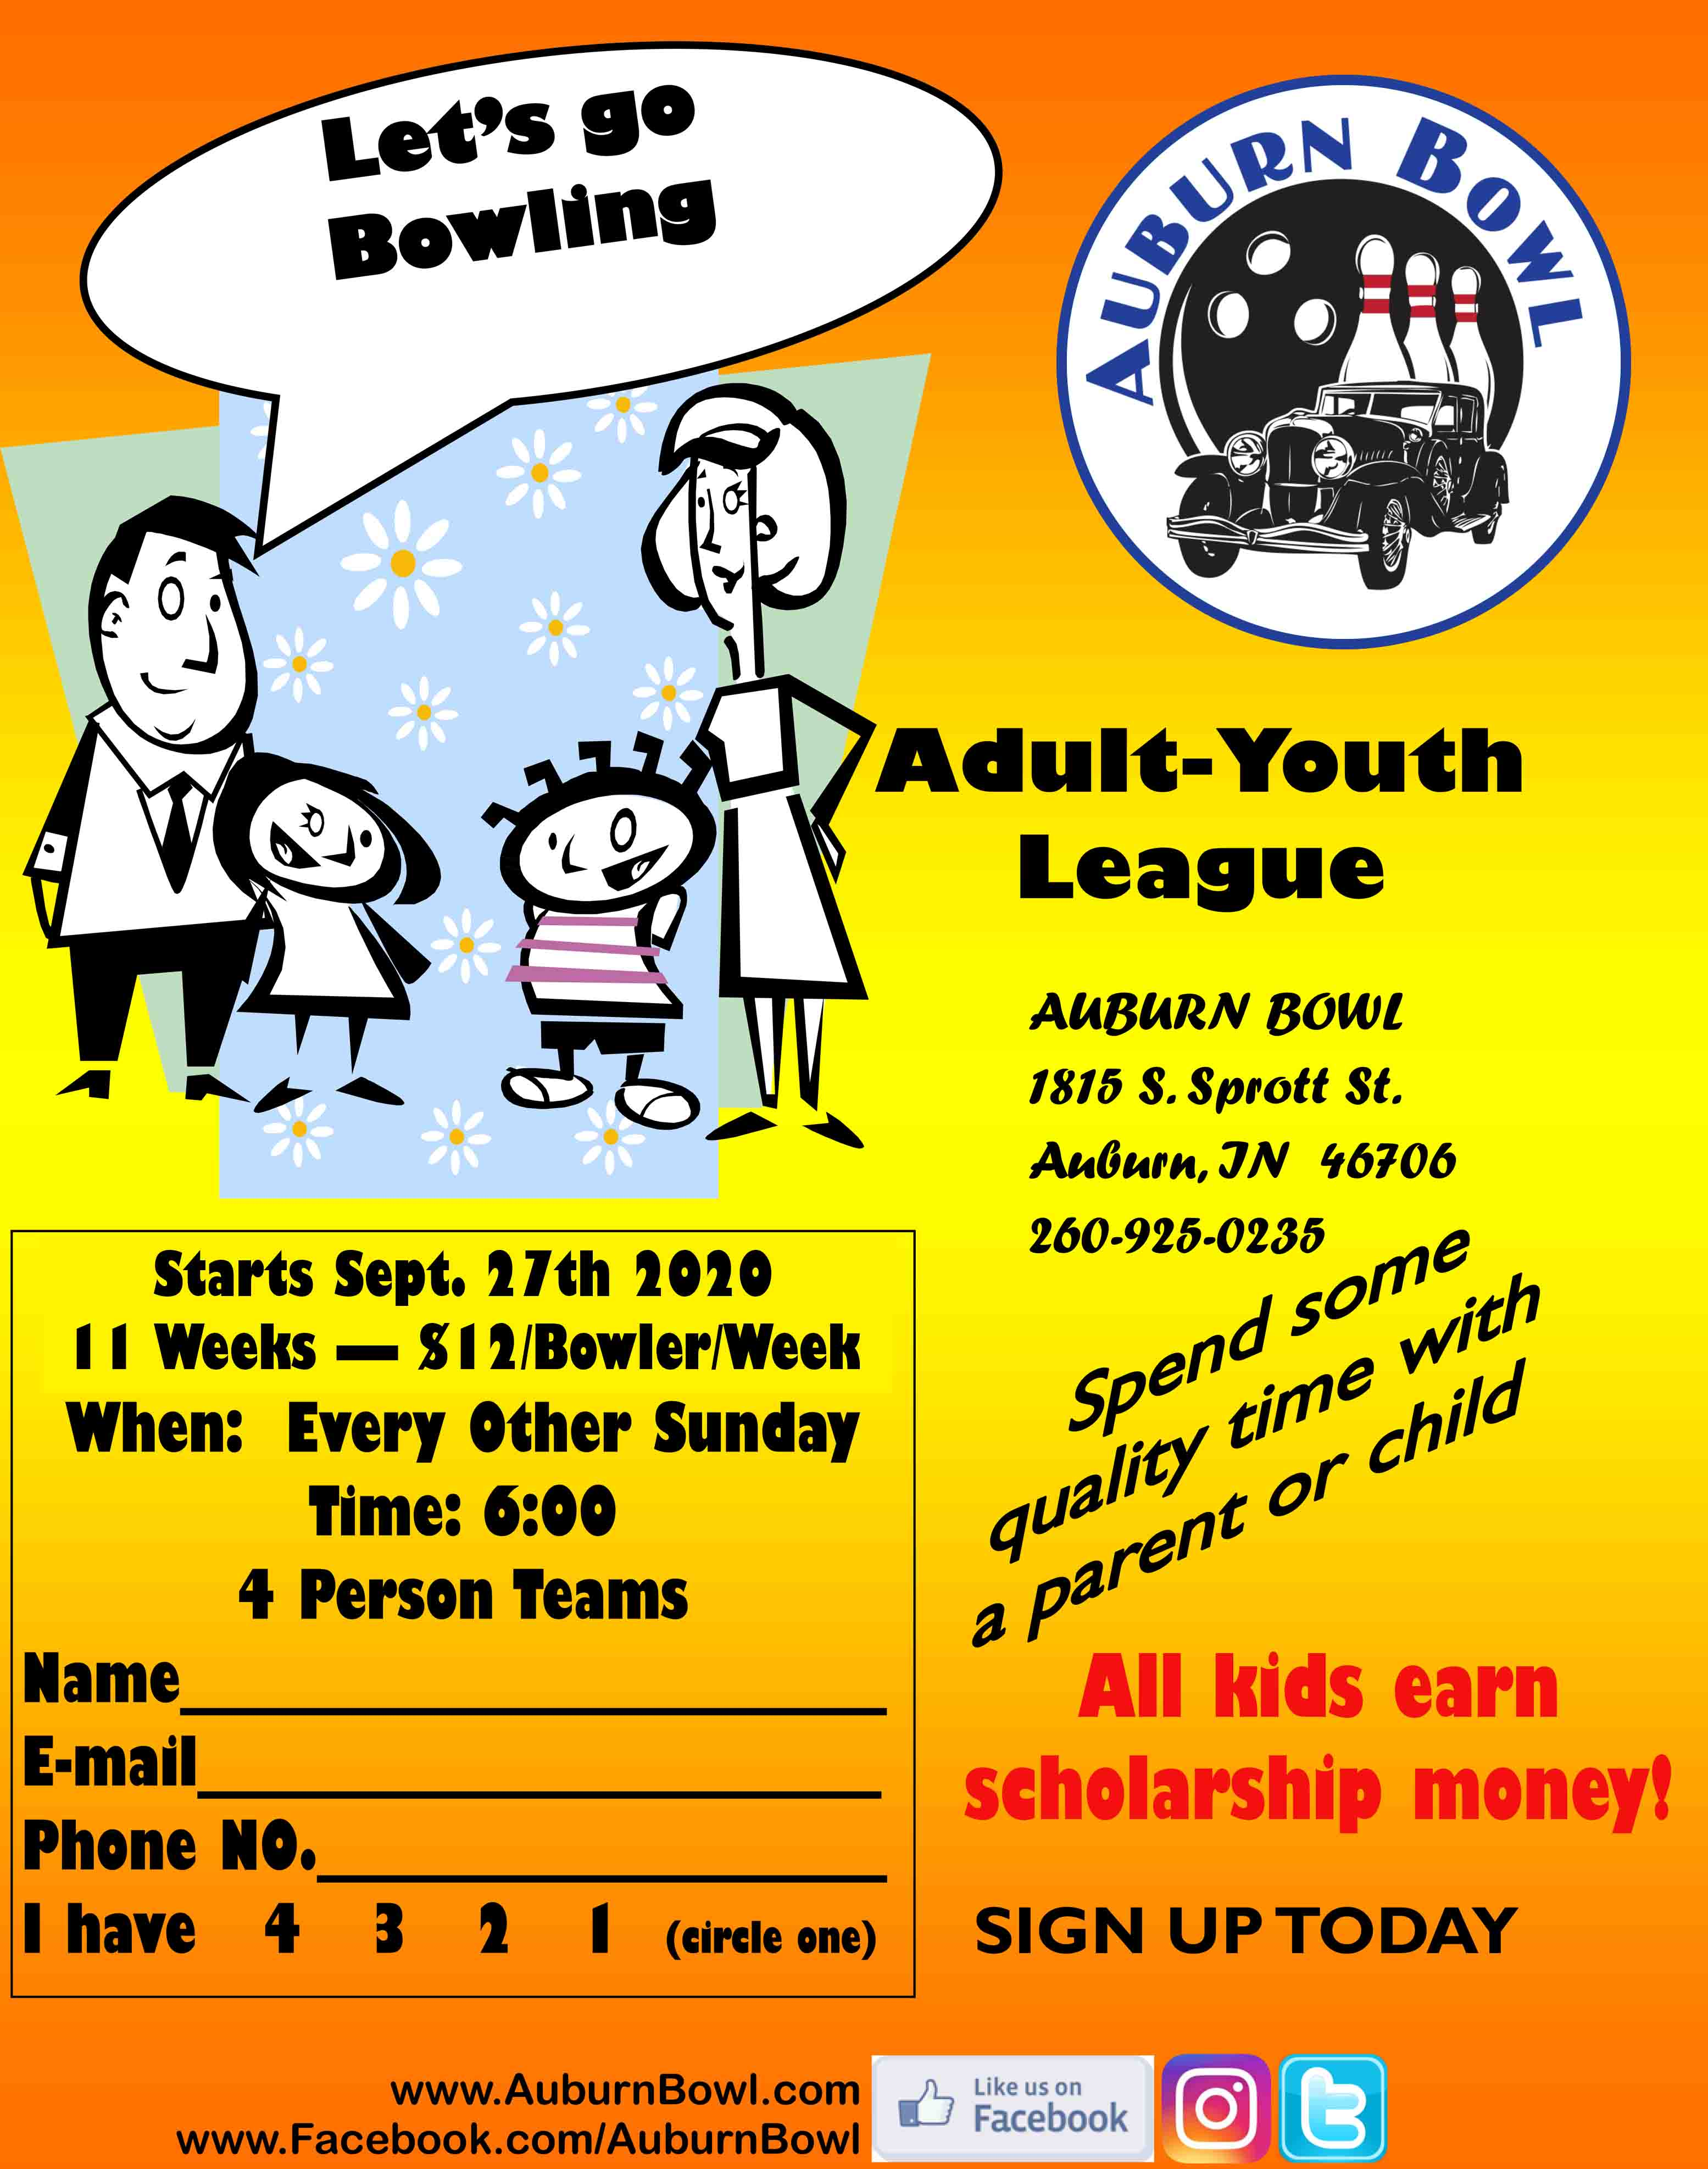 Adult Youth League Starts September 27th